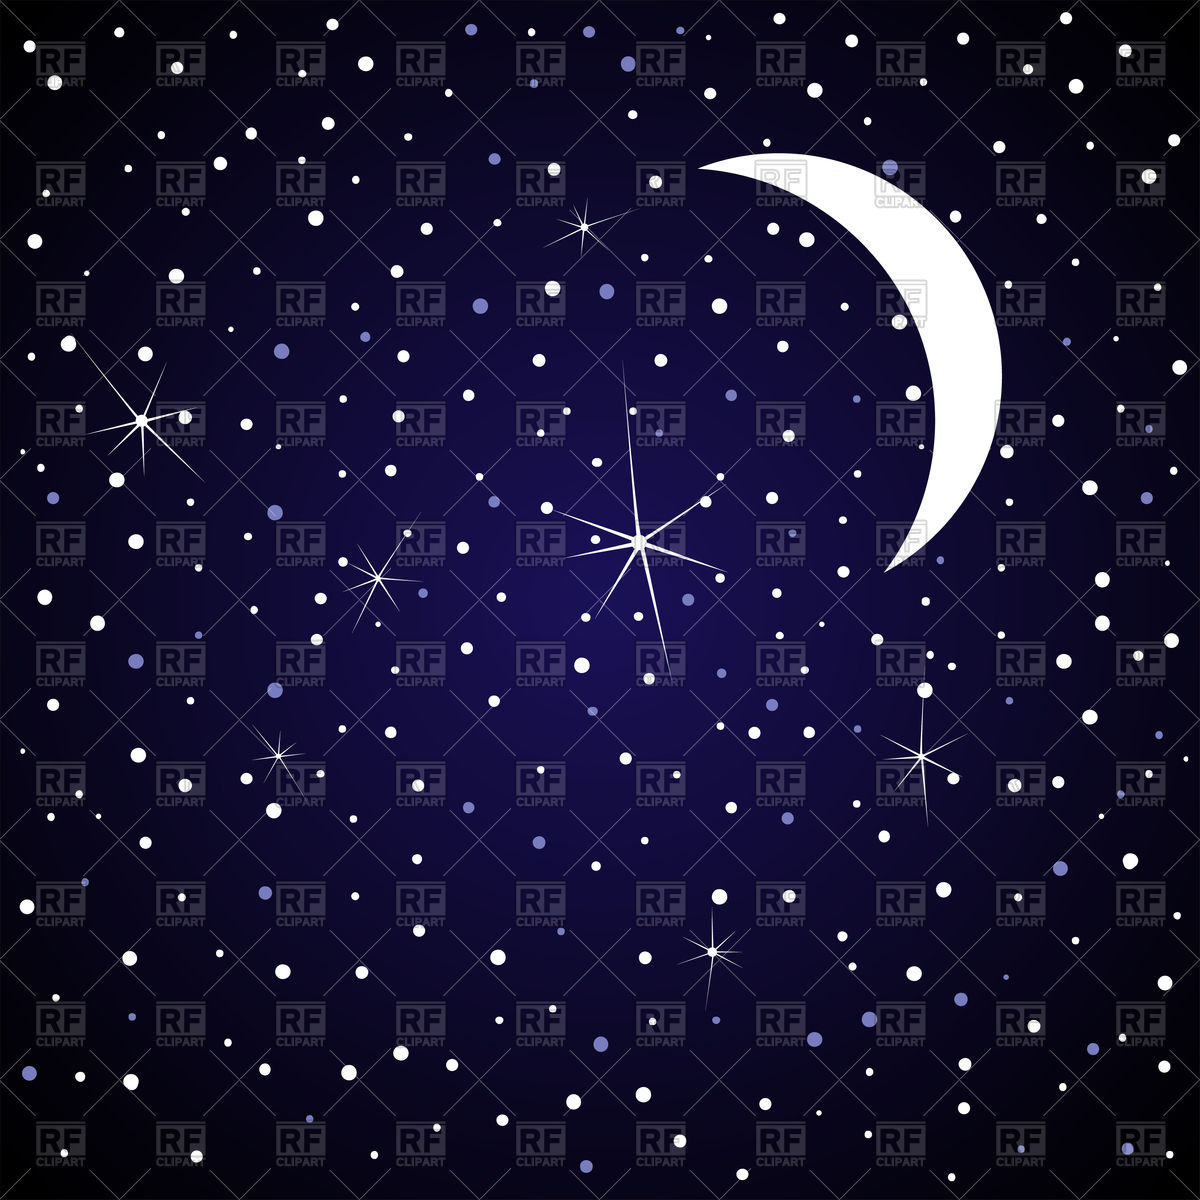 Stars in the night sky clipart.